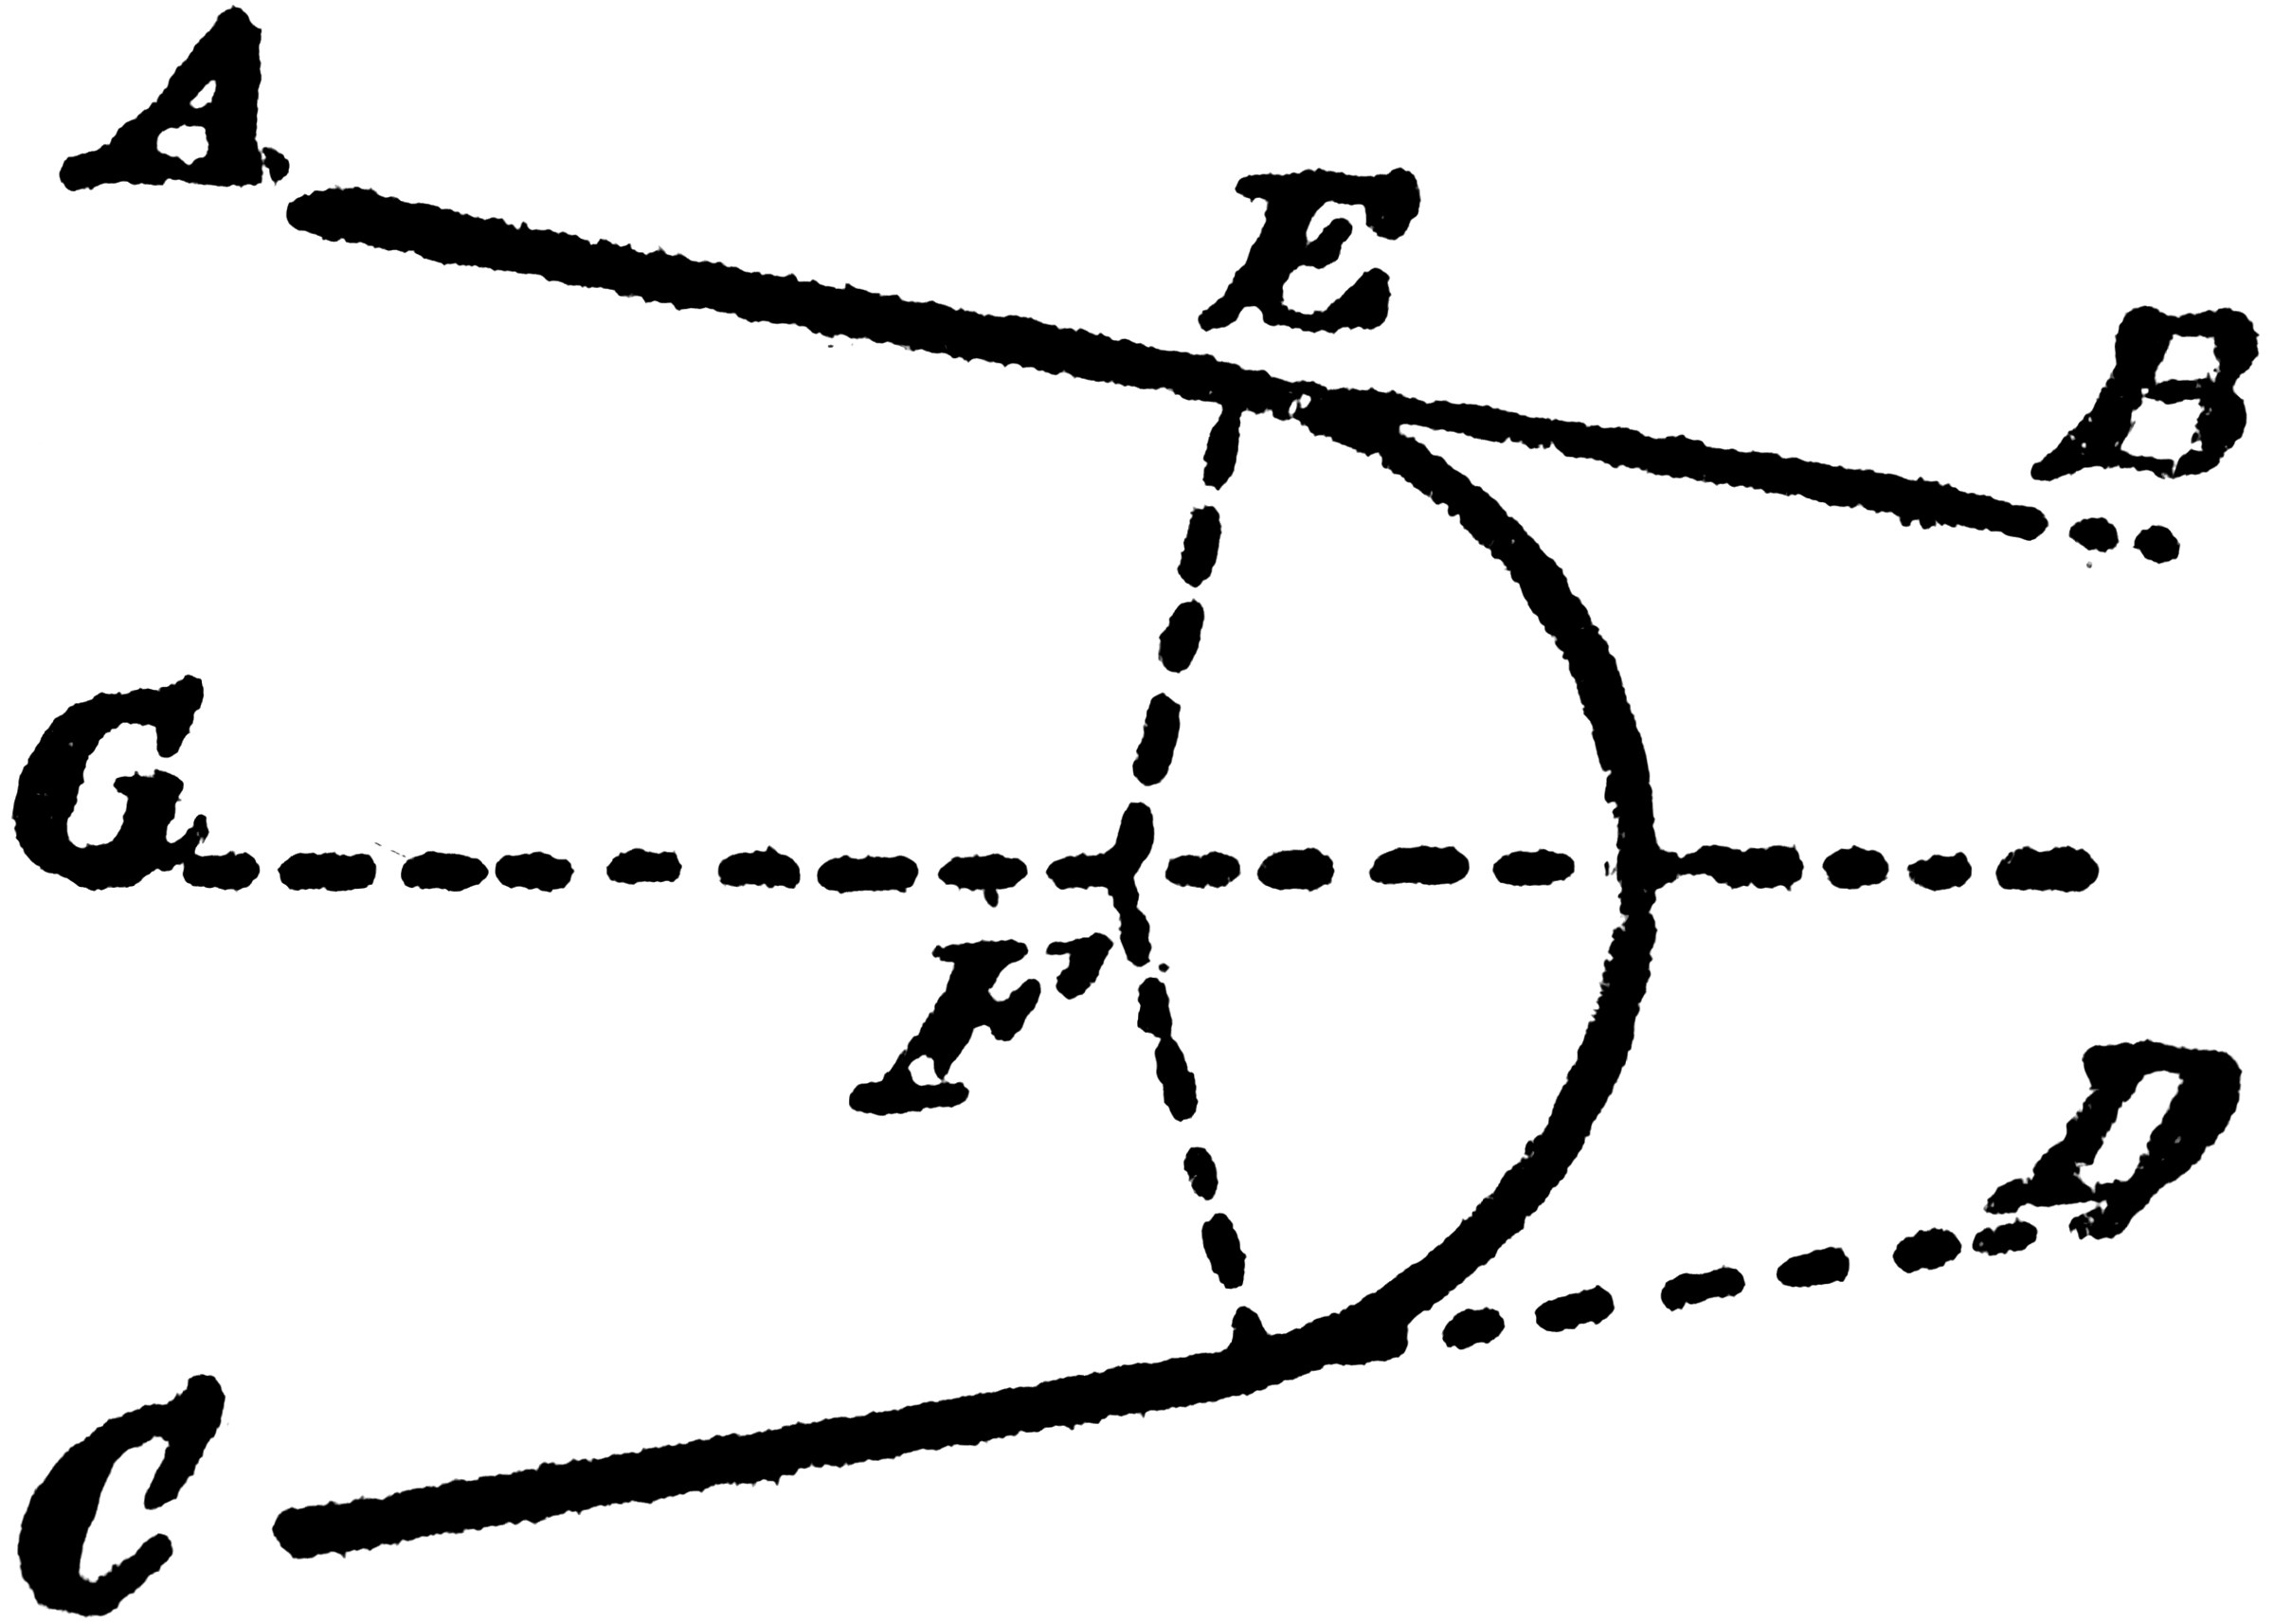 Construction Of A Circle That Tangents 2 Given Lines